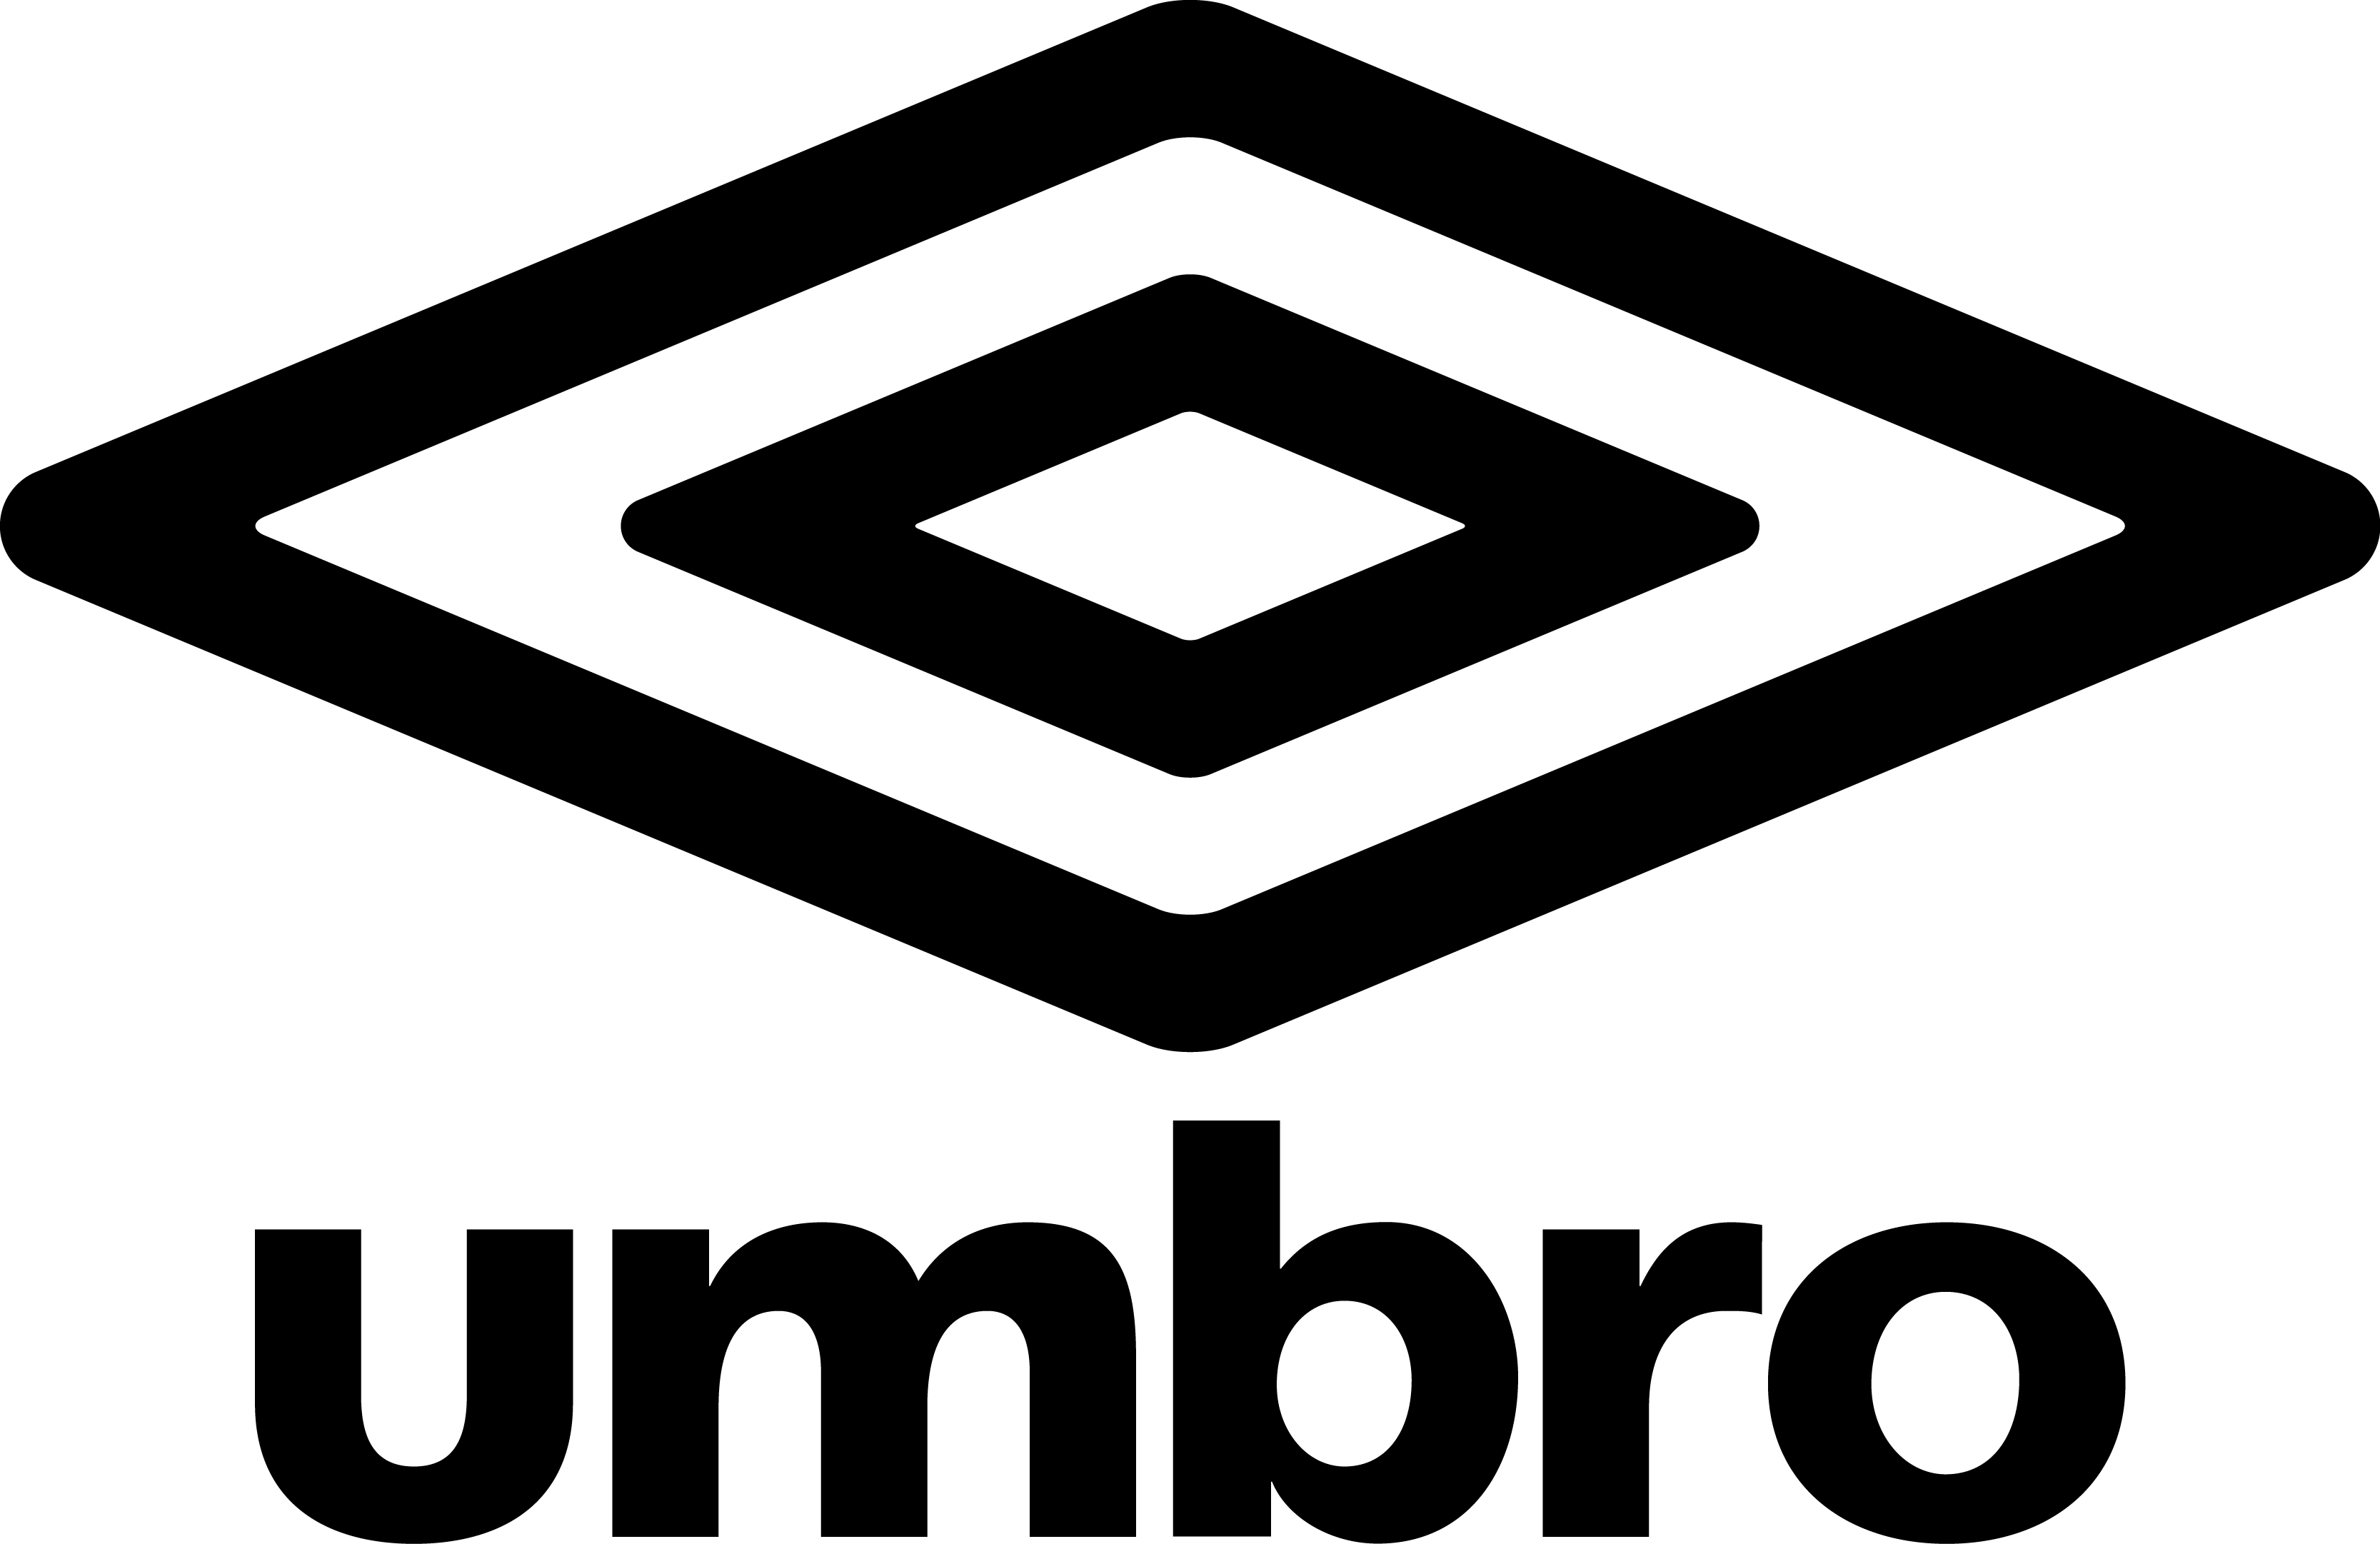 UMBRO_logo [Converted]